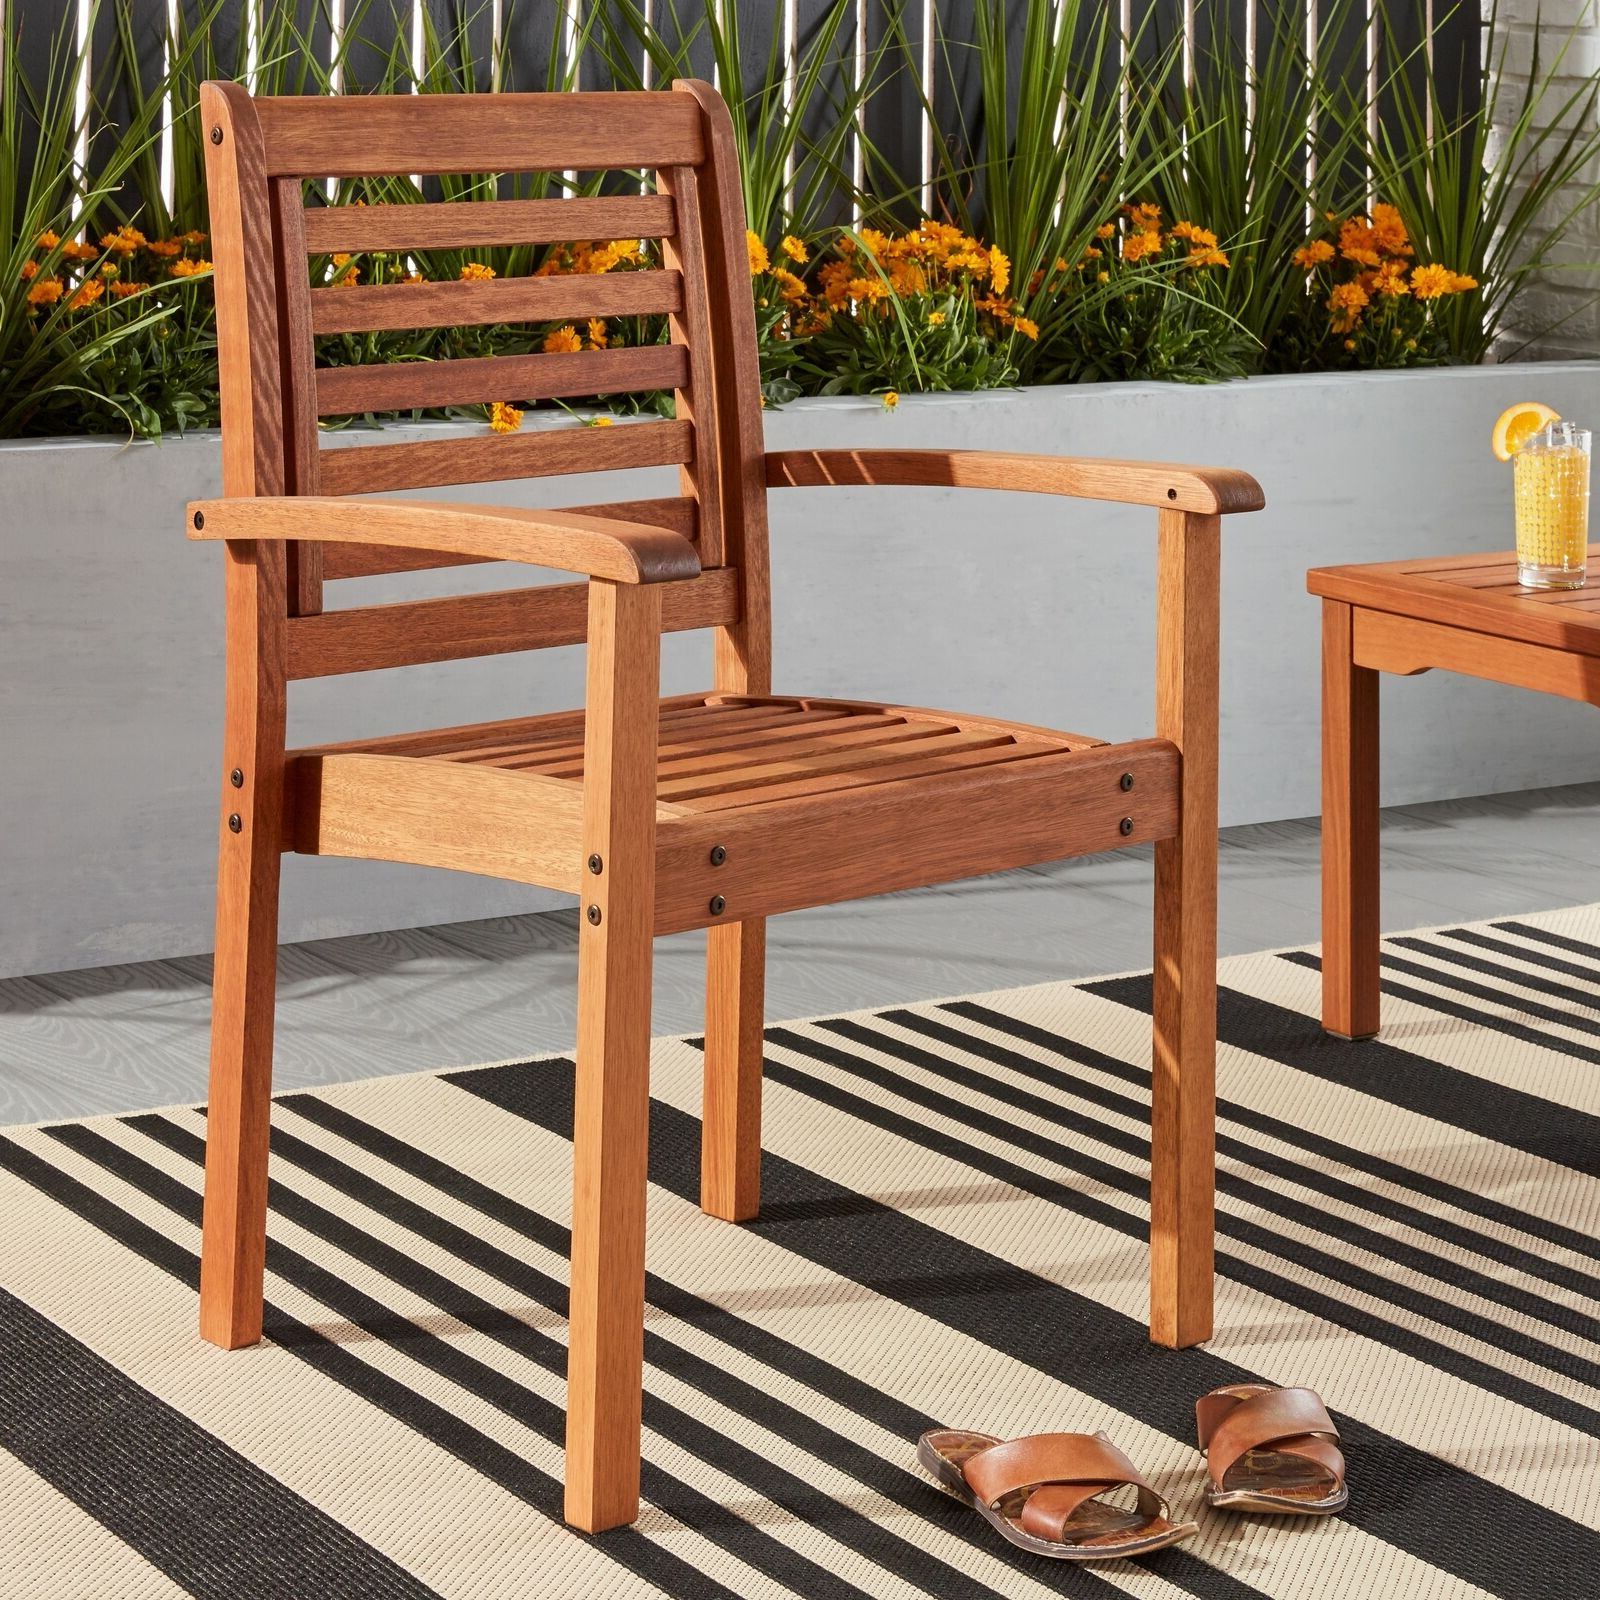 Havenside Home Tottenville Eucalyptus Wood Stackable Chair – Brown N/a Pertaining To Current Havenside Home Tottenville Eucalyptus Loungers (View 4 of 25)